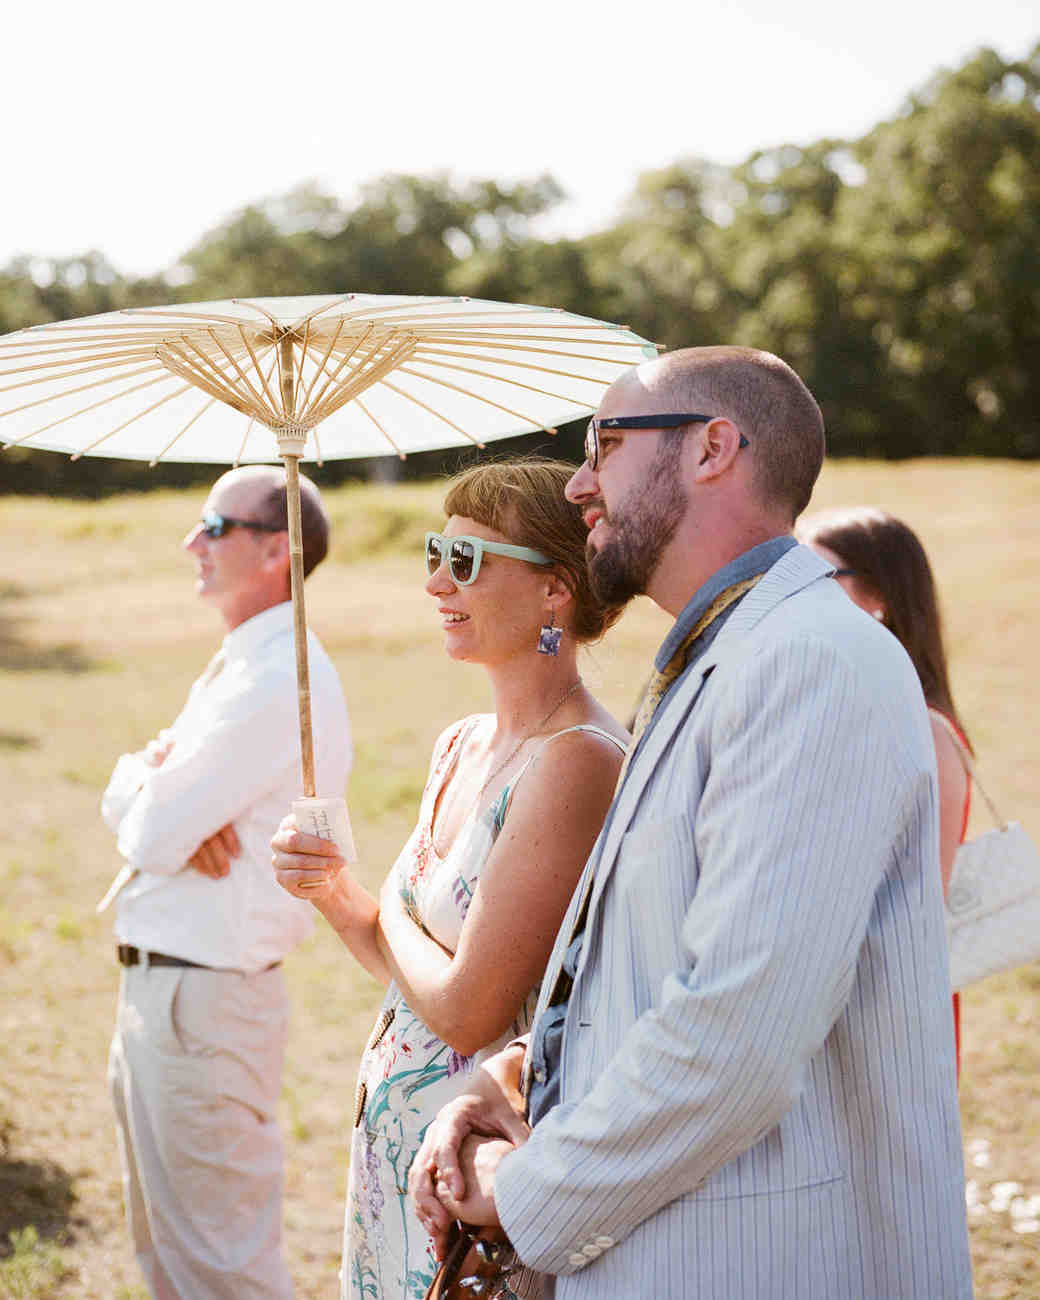 jocelyn-graham-wedding-parasol-0800-s111847-0315.jpg